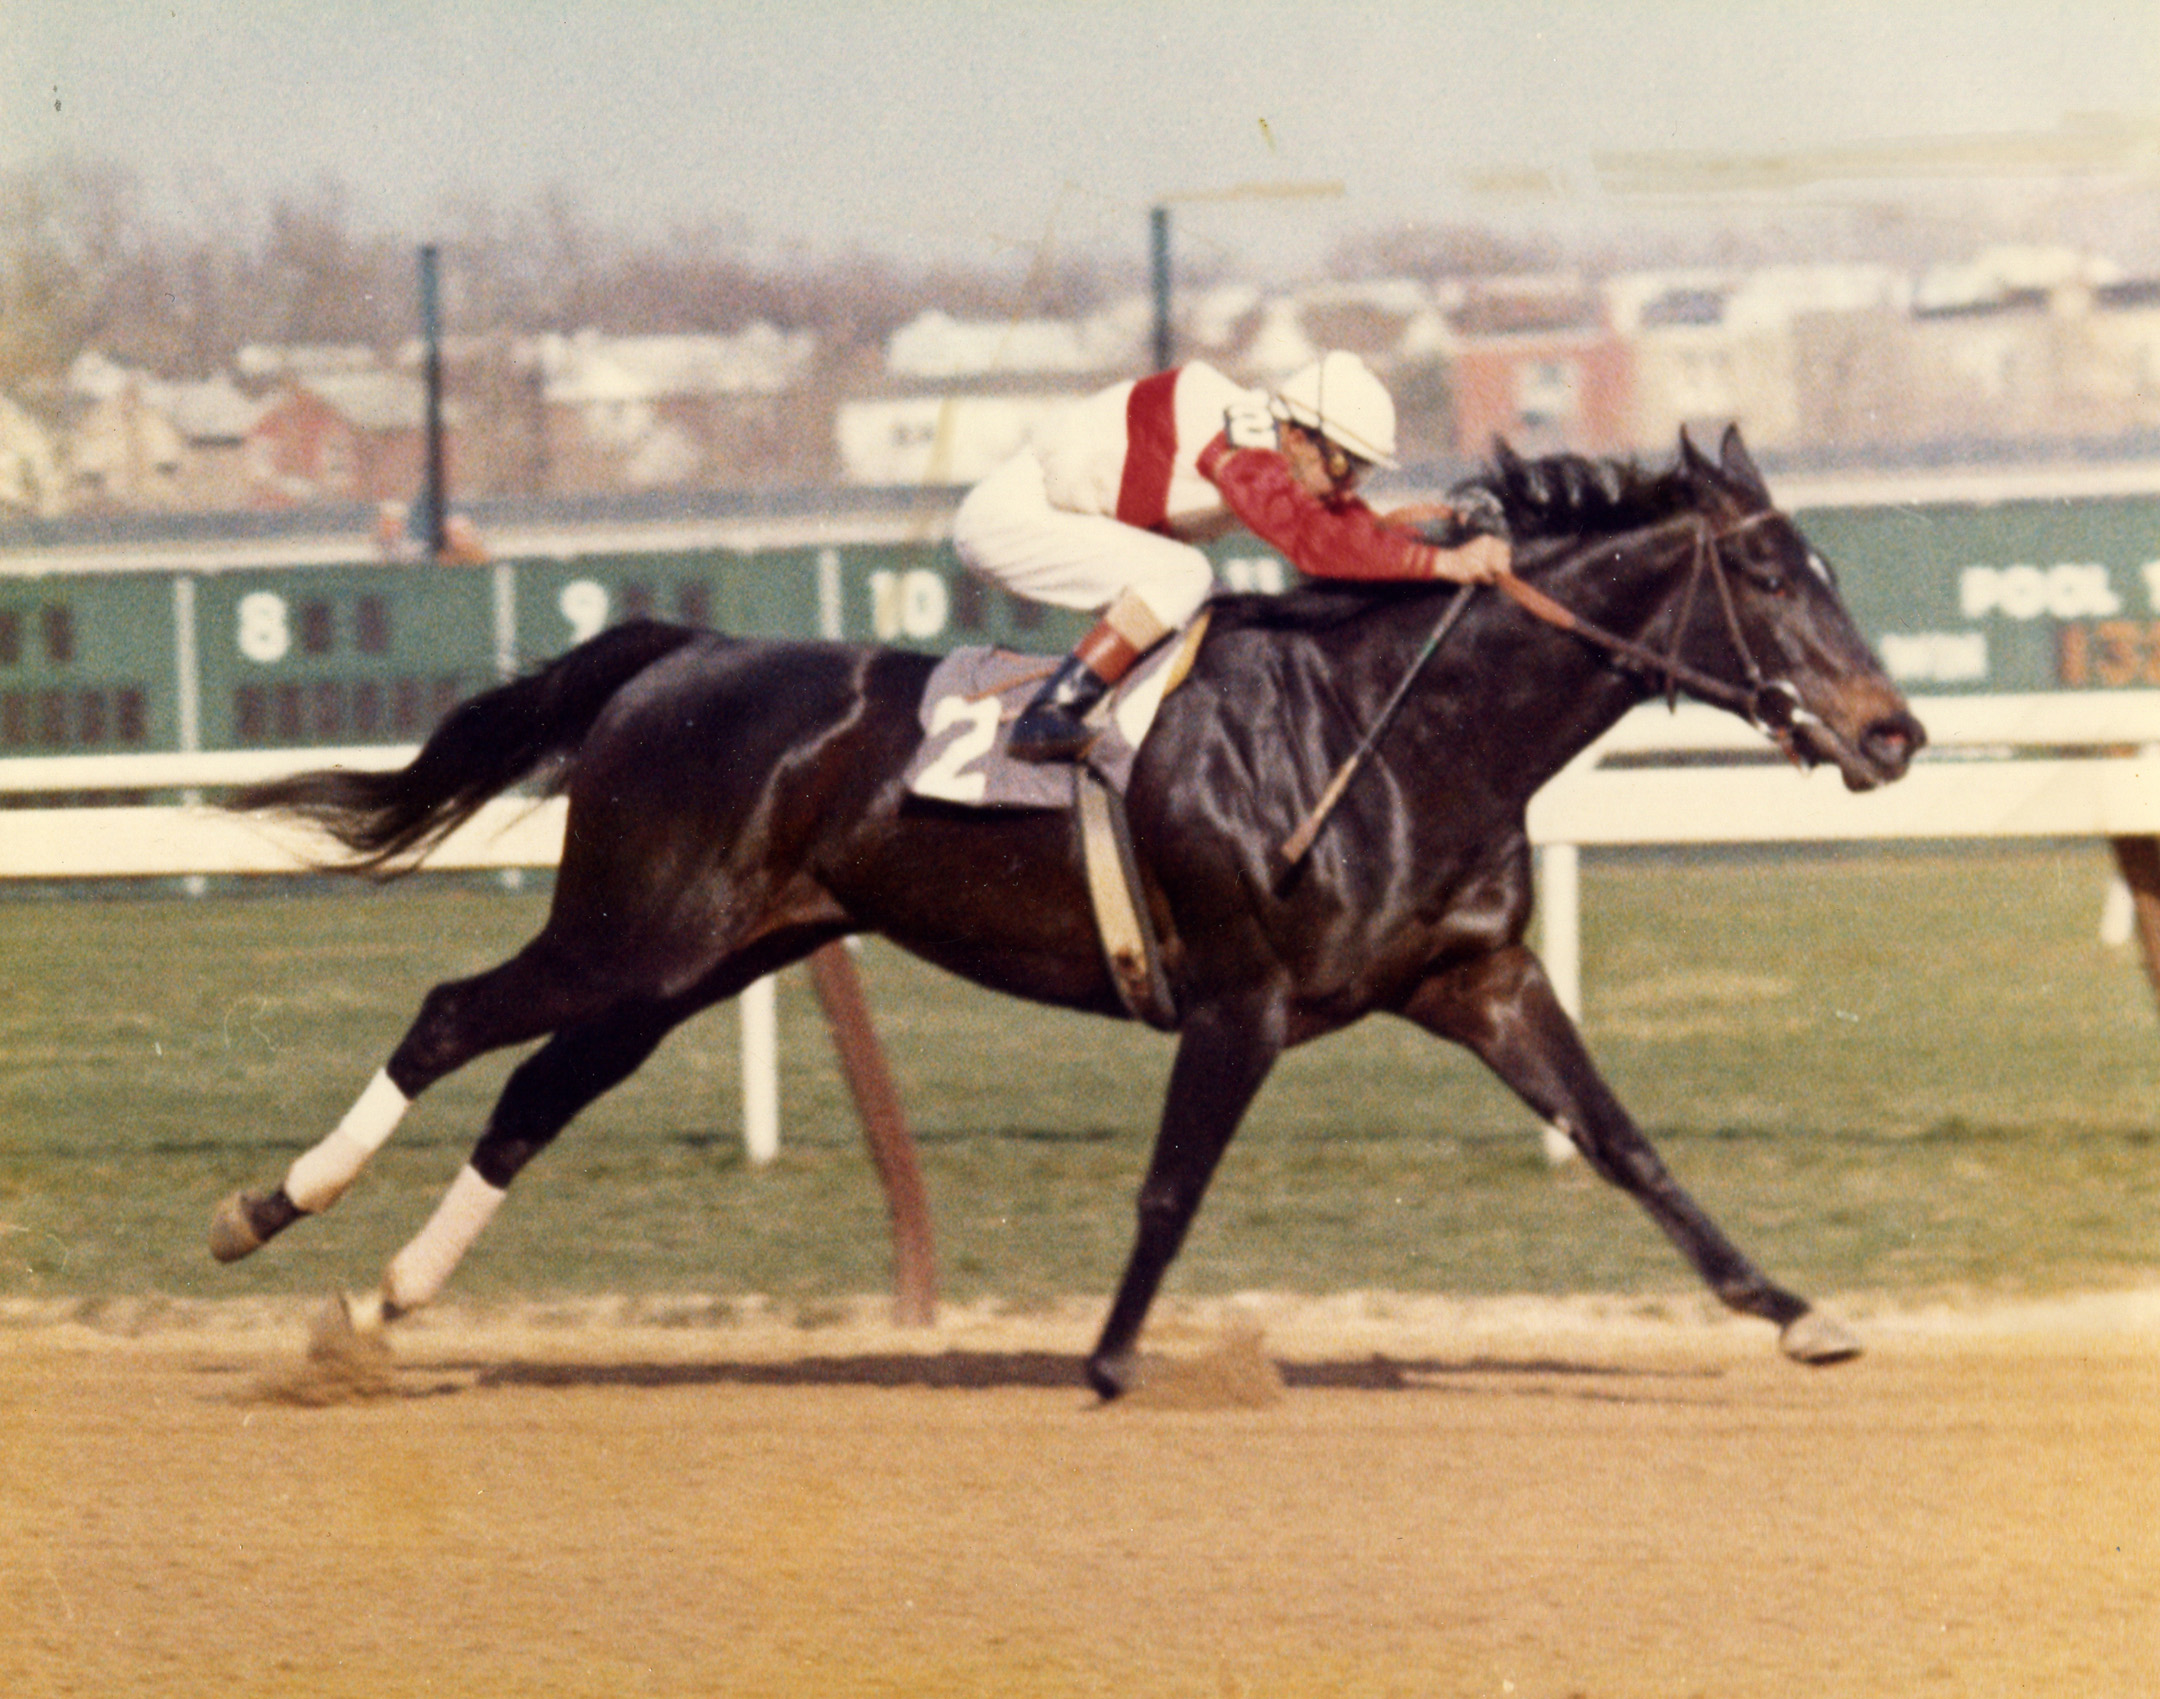 Ruffian (Jacinto Vasquez up) winning an allowance race at Aqueduct on April 14, 1975 (Museum Collection)